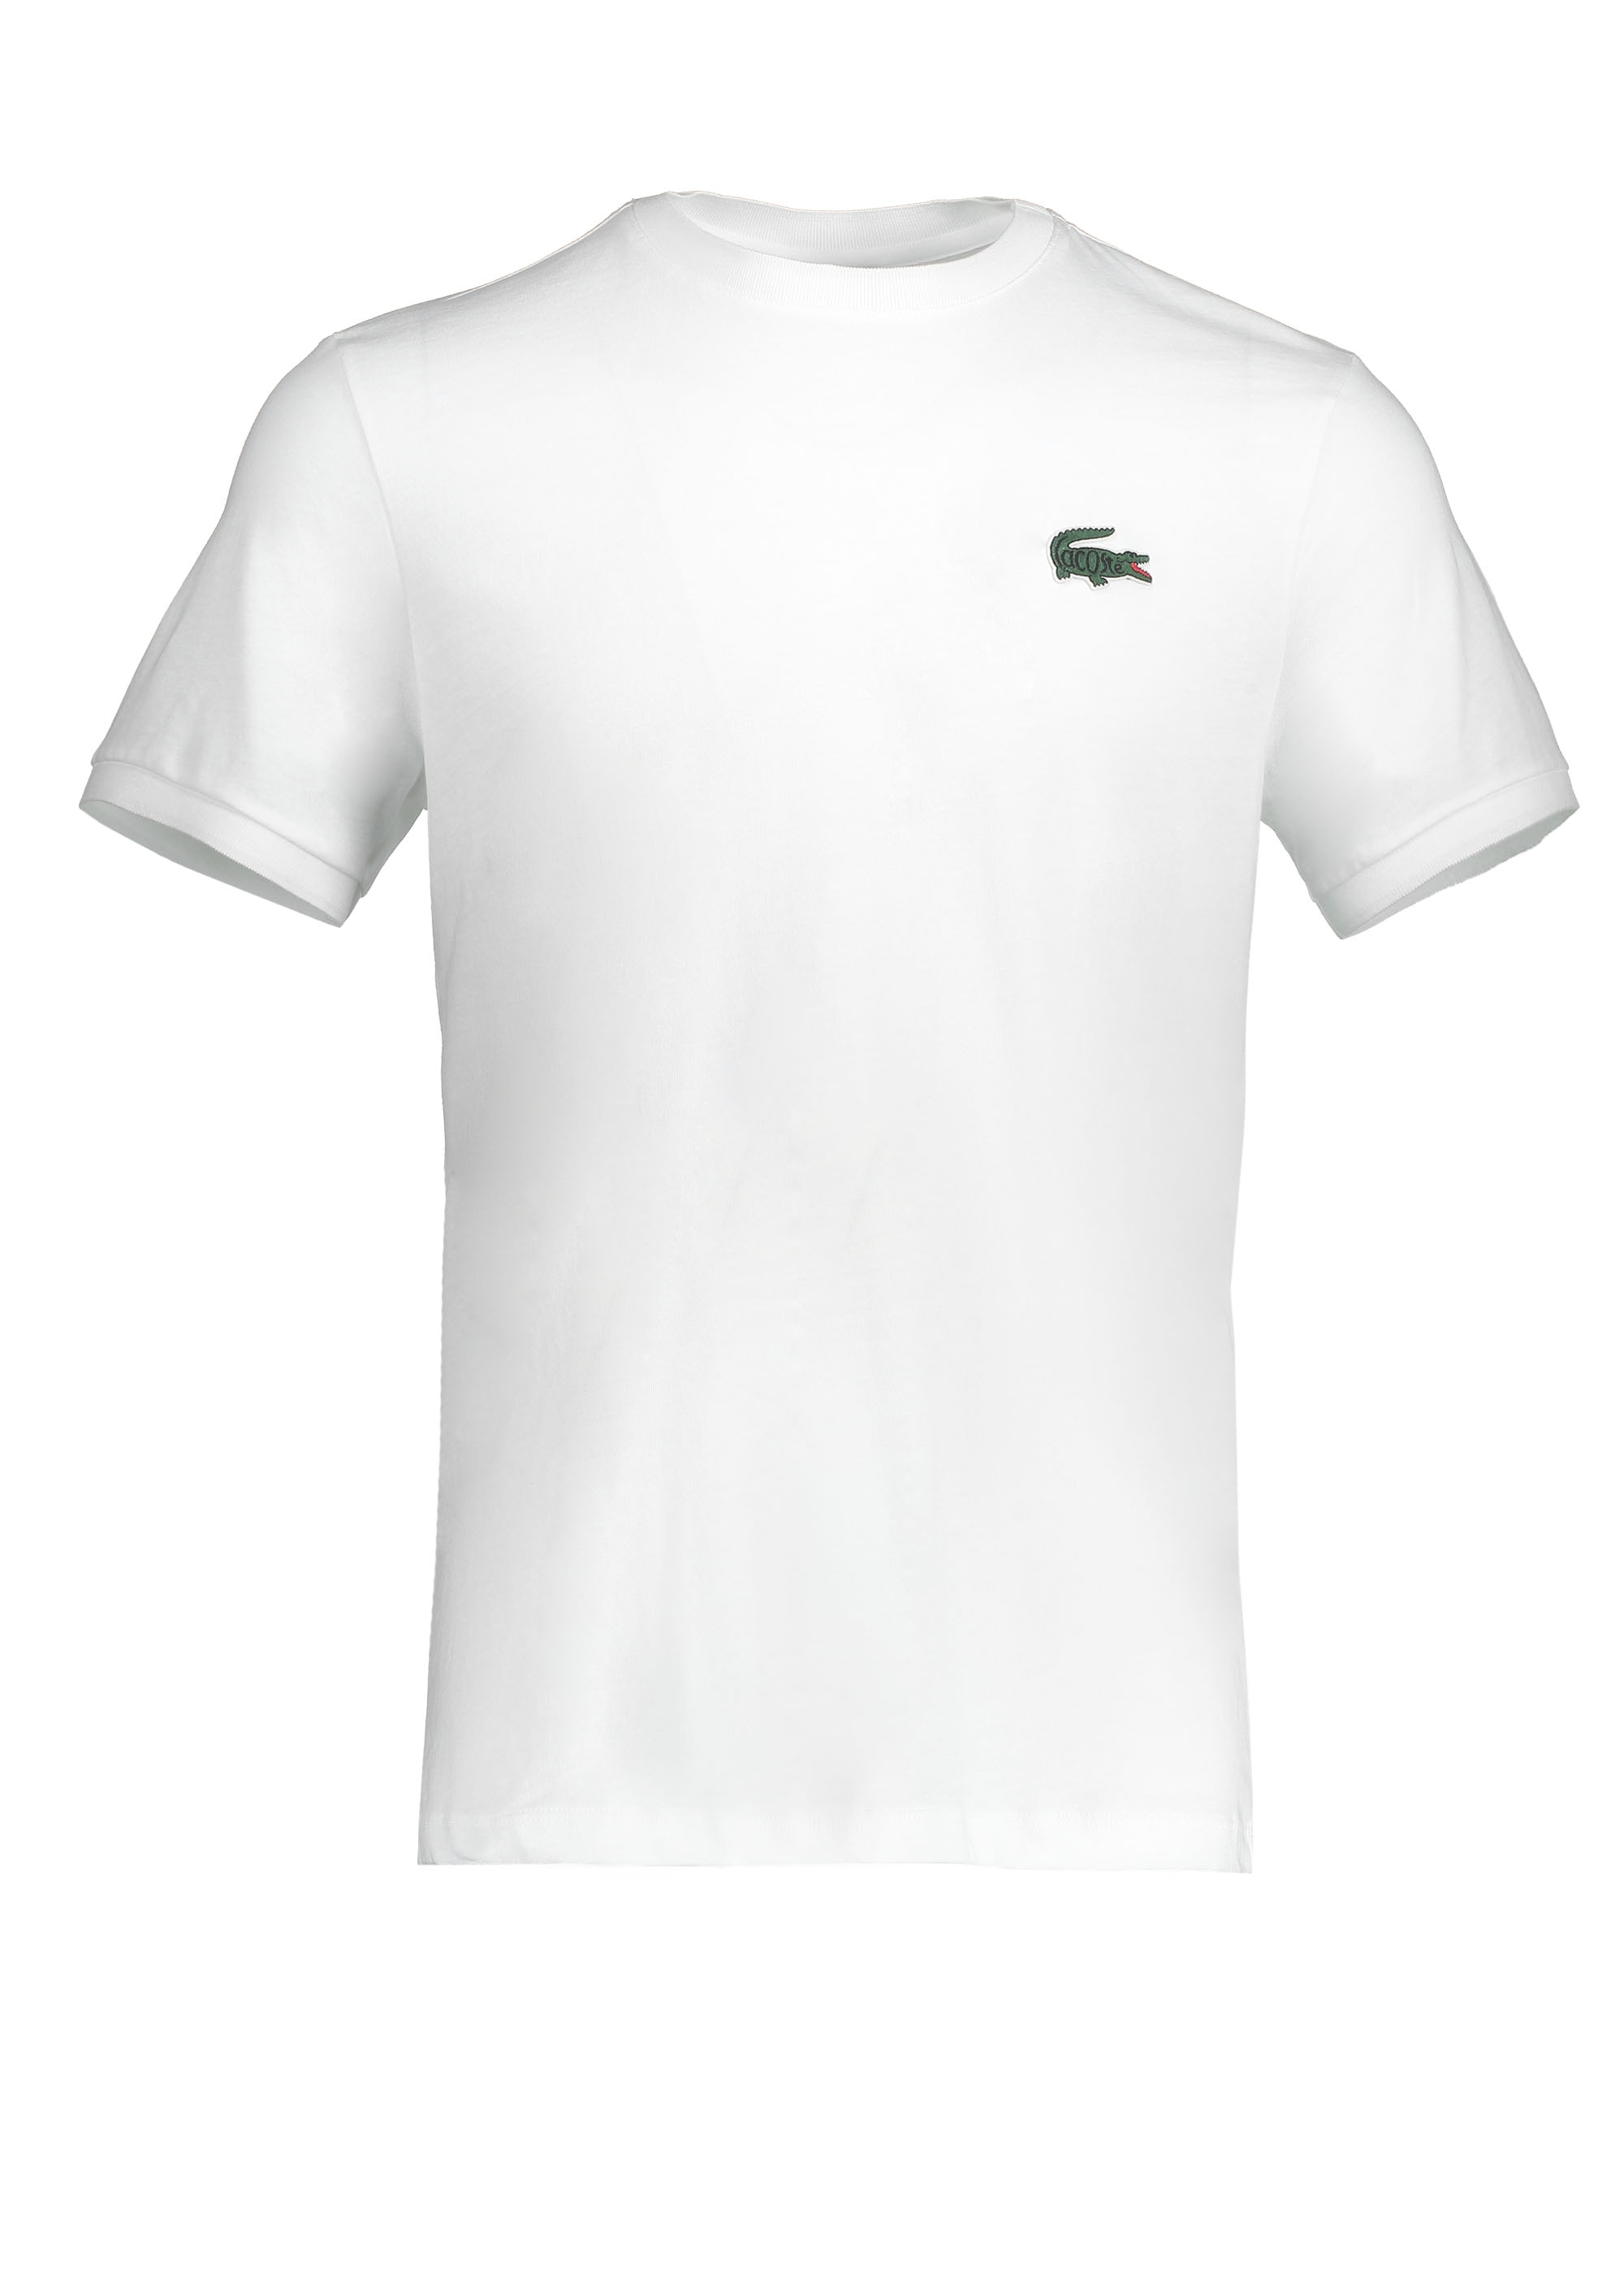 49852727 Lacoste Logo Tee - White - T-shirts from Triads UK